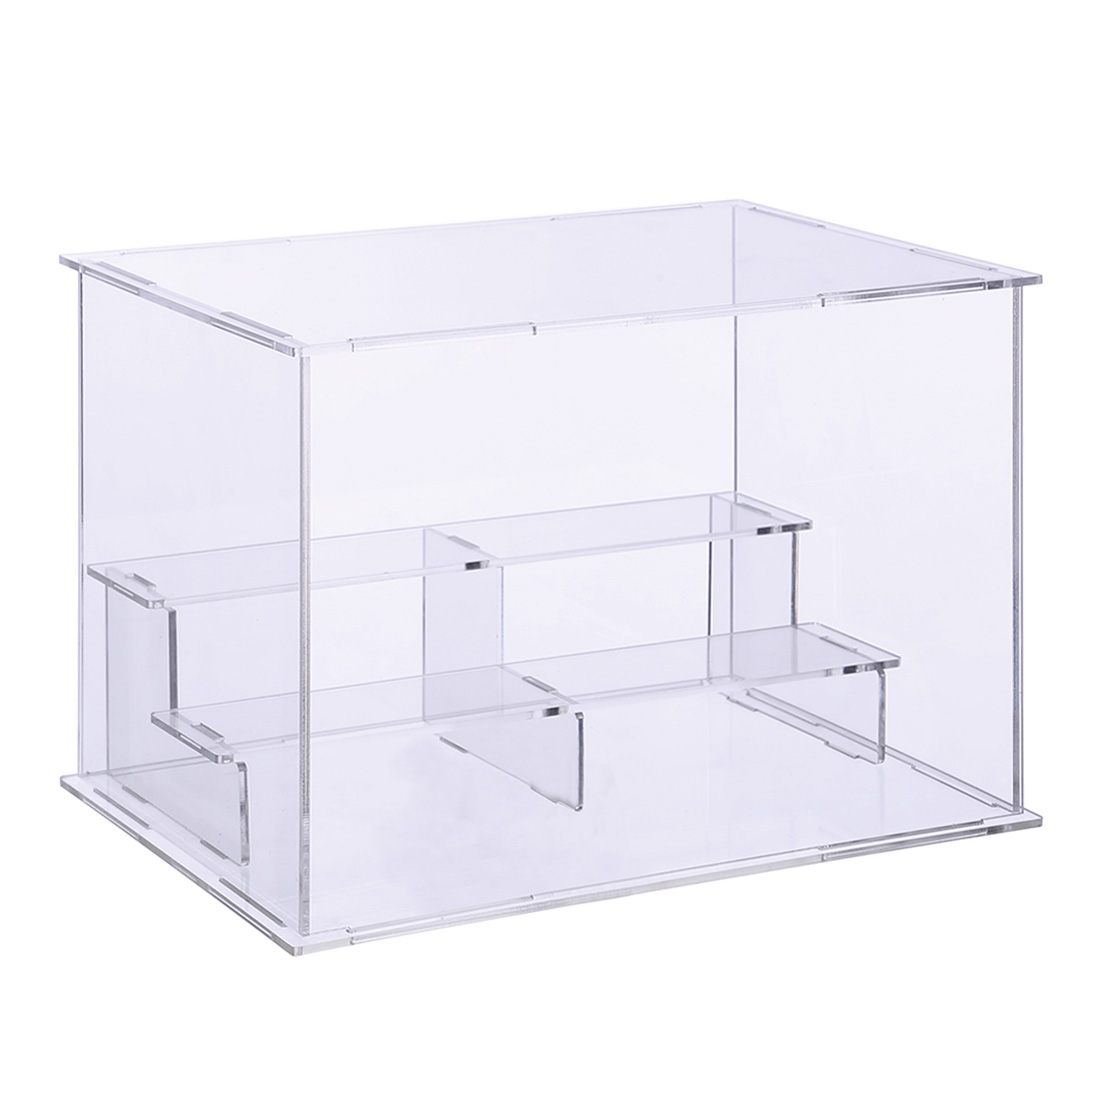 26x20x17.6cm Acrylic Display Case Countertop Box Stand Dustproof Protection Showcase For Action Figures Toys Collectibles